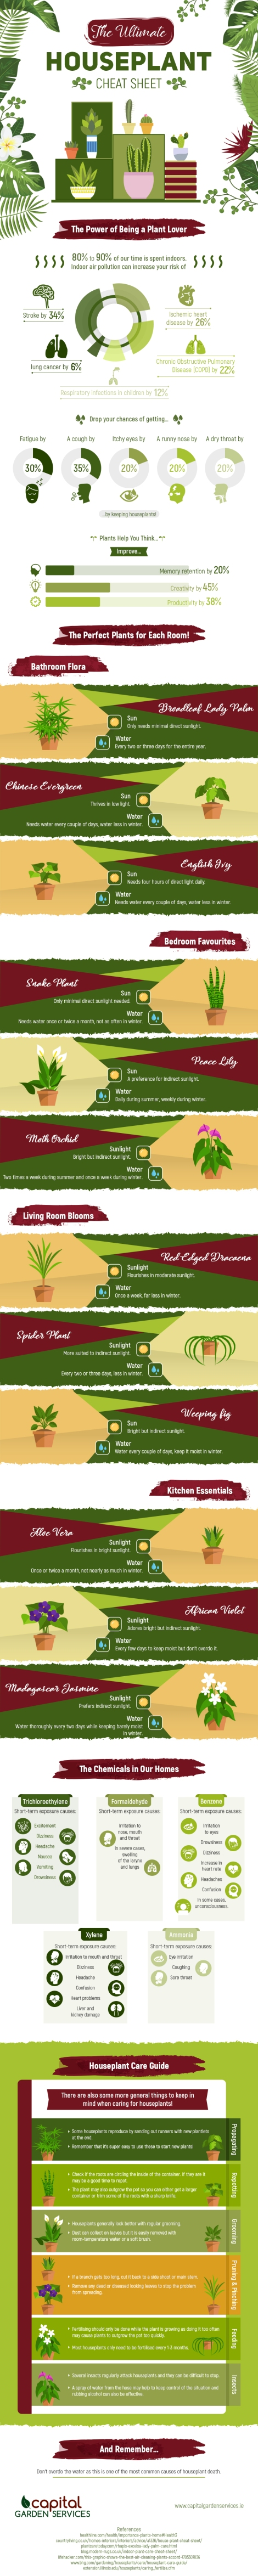 Houseplant Cheat Sheet [Infographic] | ecogreenlove